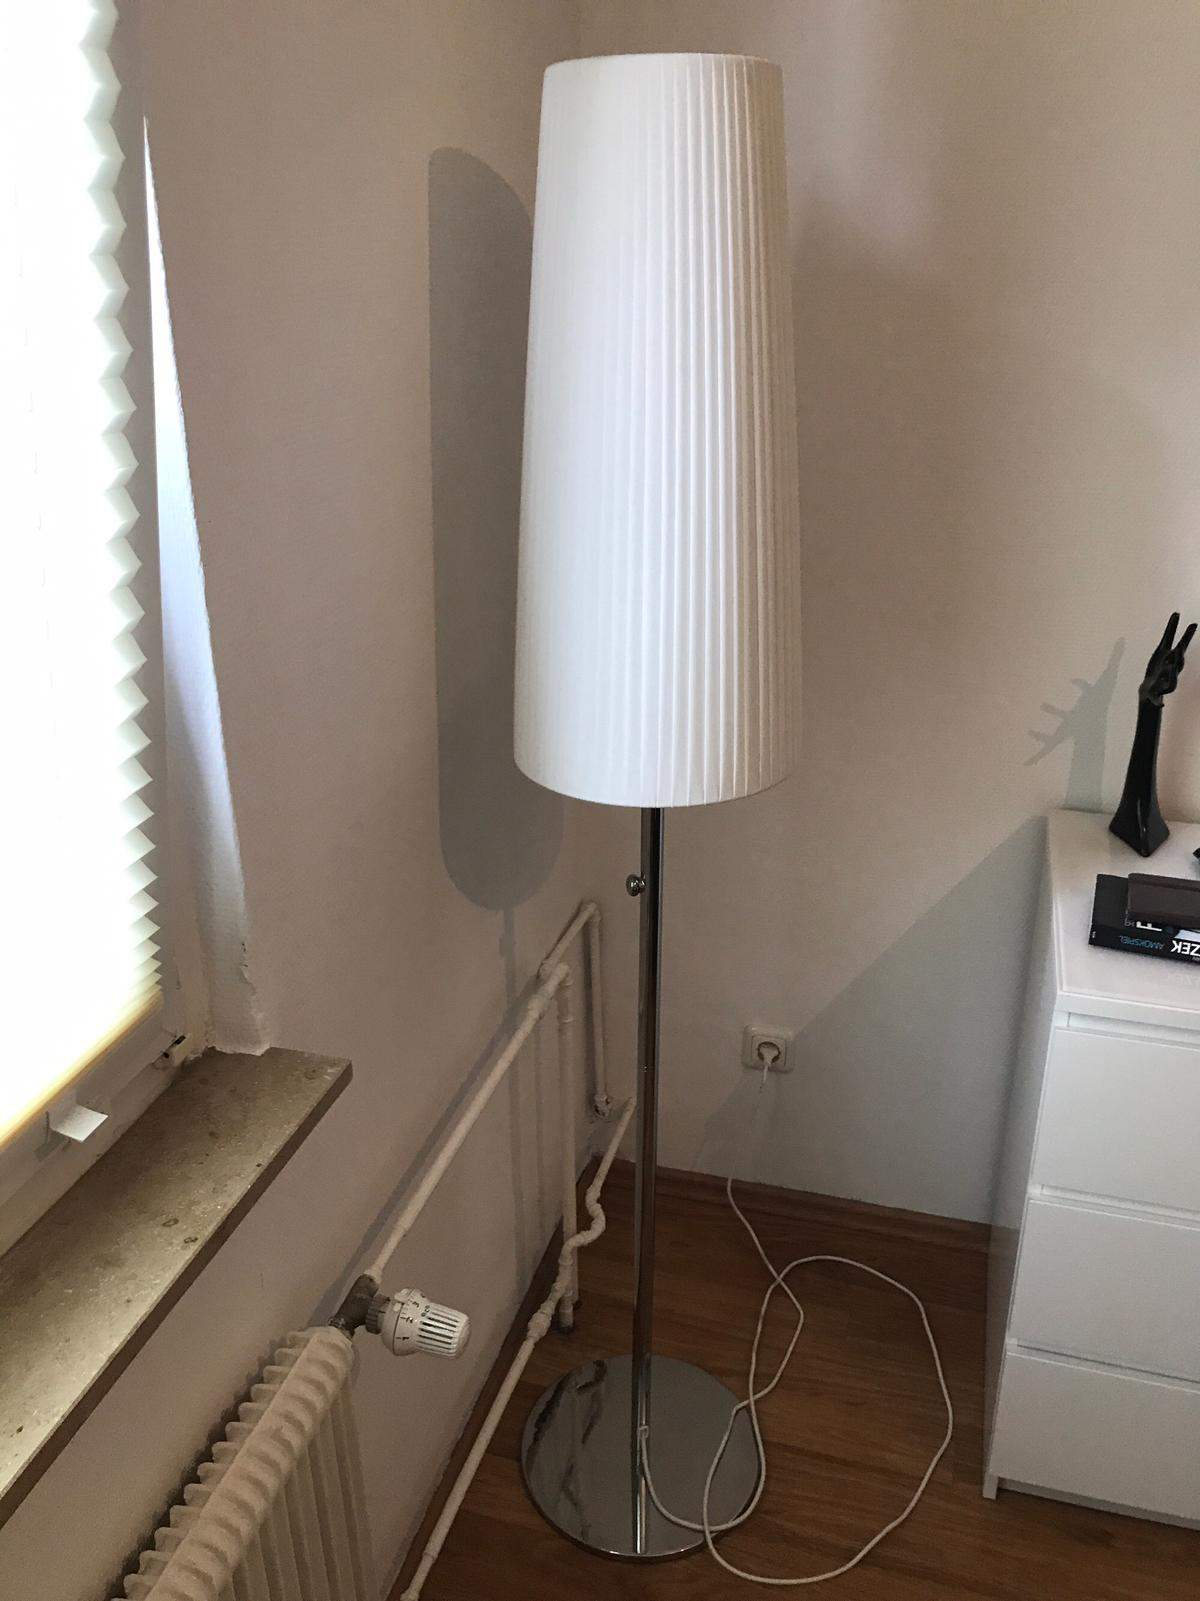 Ikea Stehlampe Lunta In 47057 Duisburg For 45 00 For Sale Shpock